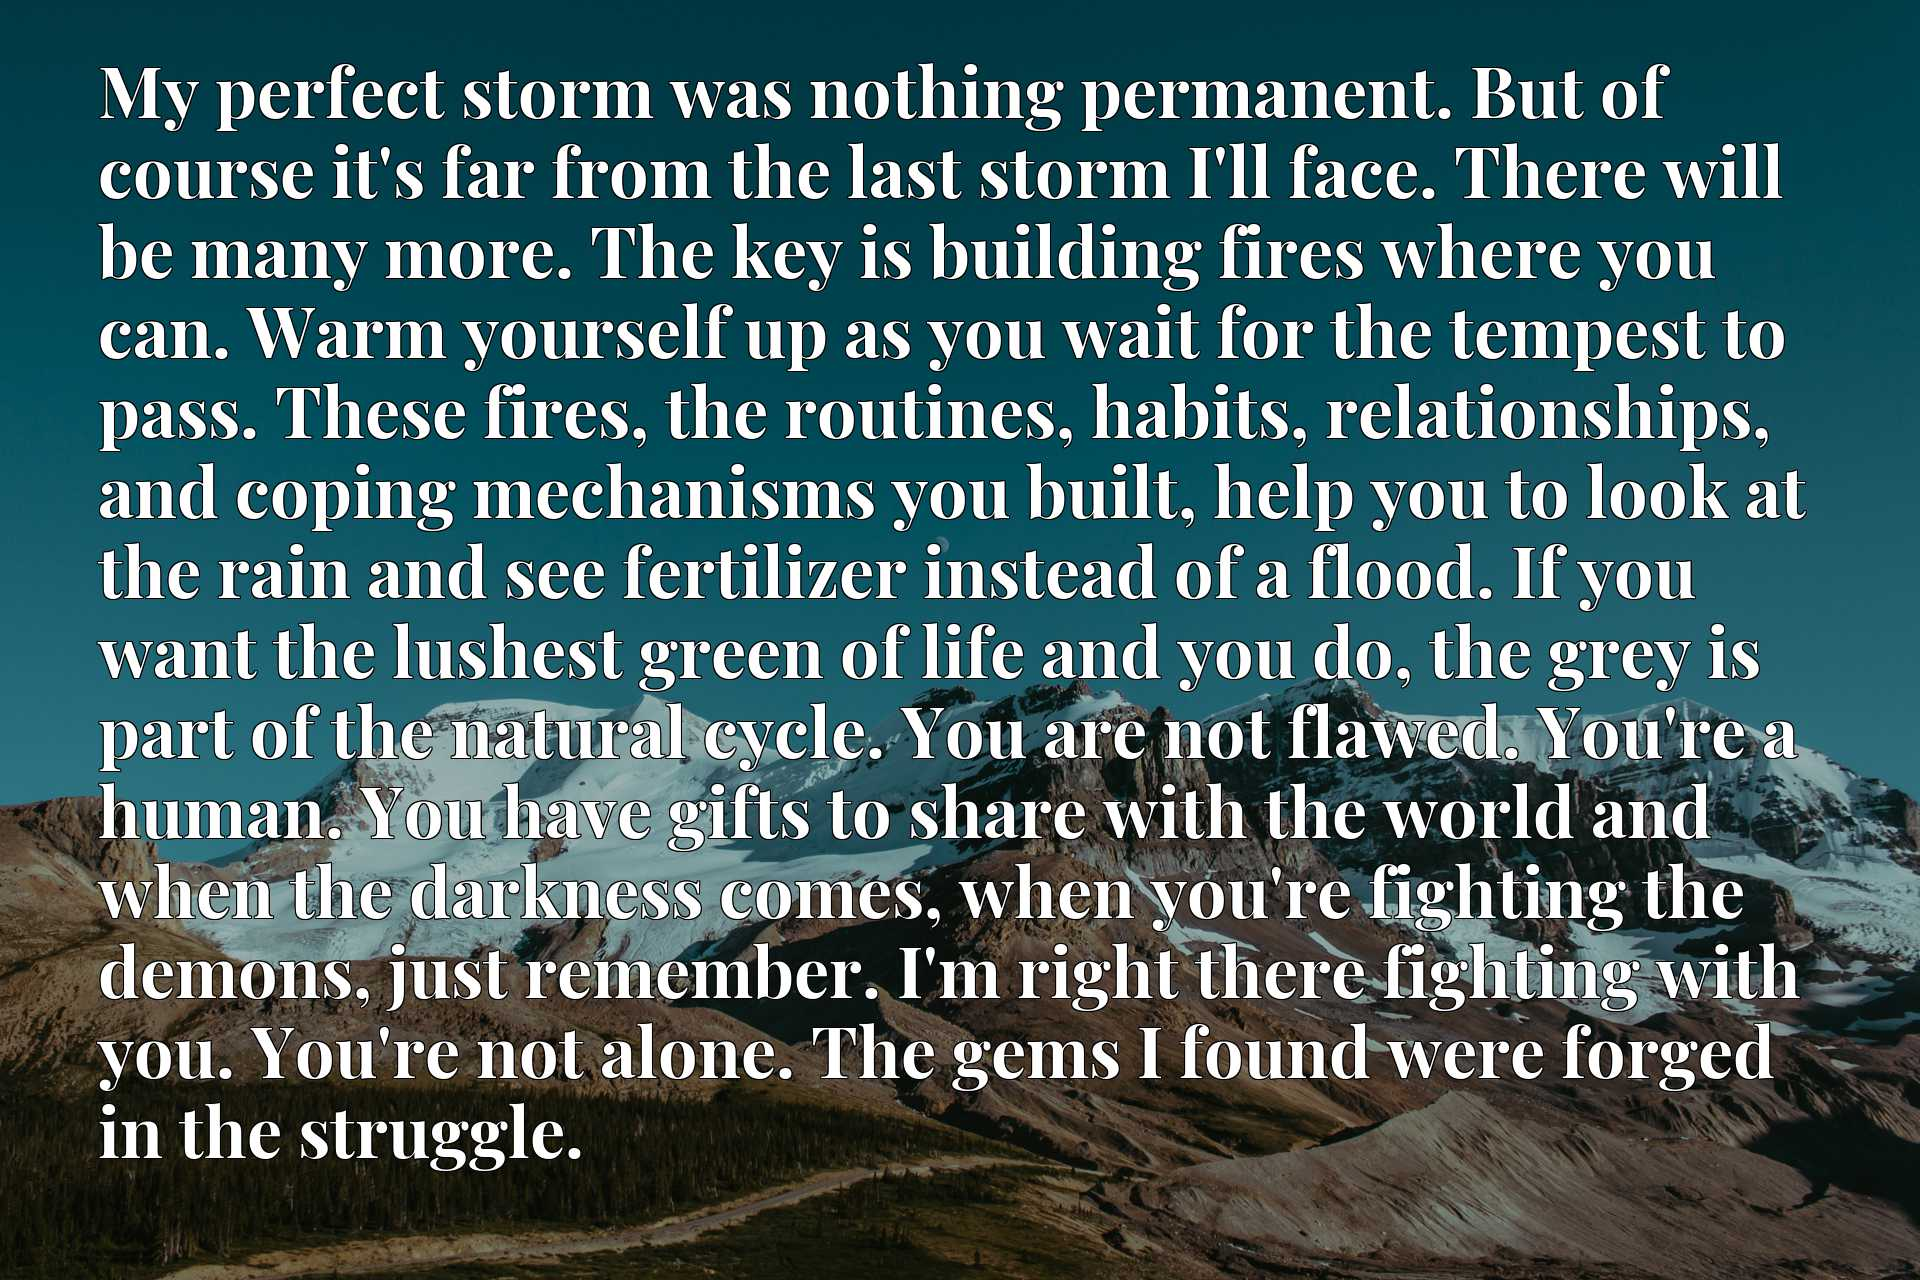 My perfect storm was nothing permanent. But of course it's far from the last storm I'll face. There will be many more. The key is building fires where you can. Warm yourself up as you wait for the tempest to pass. These fires, the routines, habits, relationships, and coping mechanisms you built, help you to look at the rain and see fertilizer instead of a flood. If you want the lushest green of life and you do, the grey is part of the natural cycle. You are not flawed. You're a human. You have gifts to share with the world and when the darkness comes, when you're fighting the demons, just remember. I'm right there fighting with you. You're not alone. The gems I found were forged in the struggle.